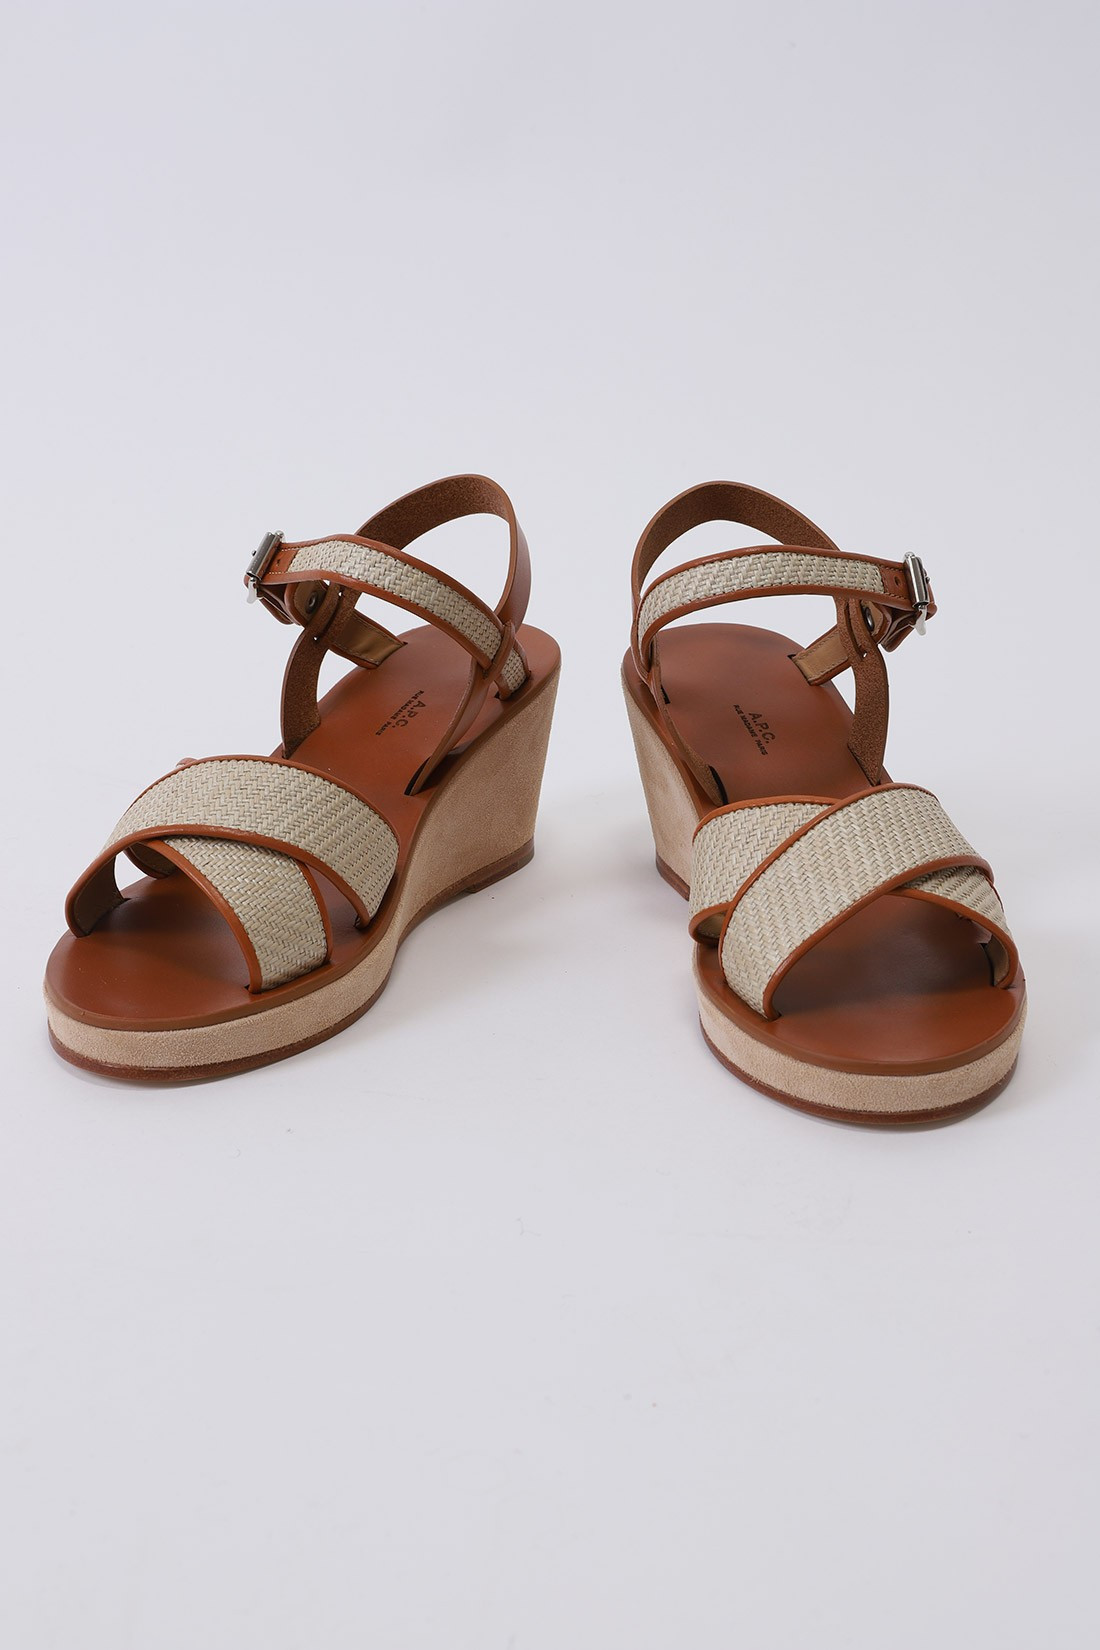 A.P.C. FOR WOMAN / Sandales judith Beige